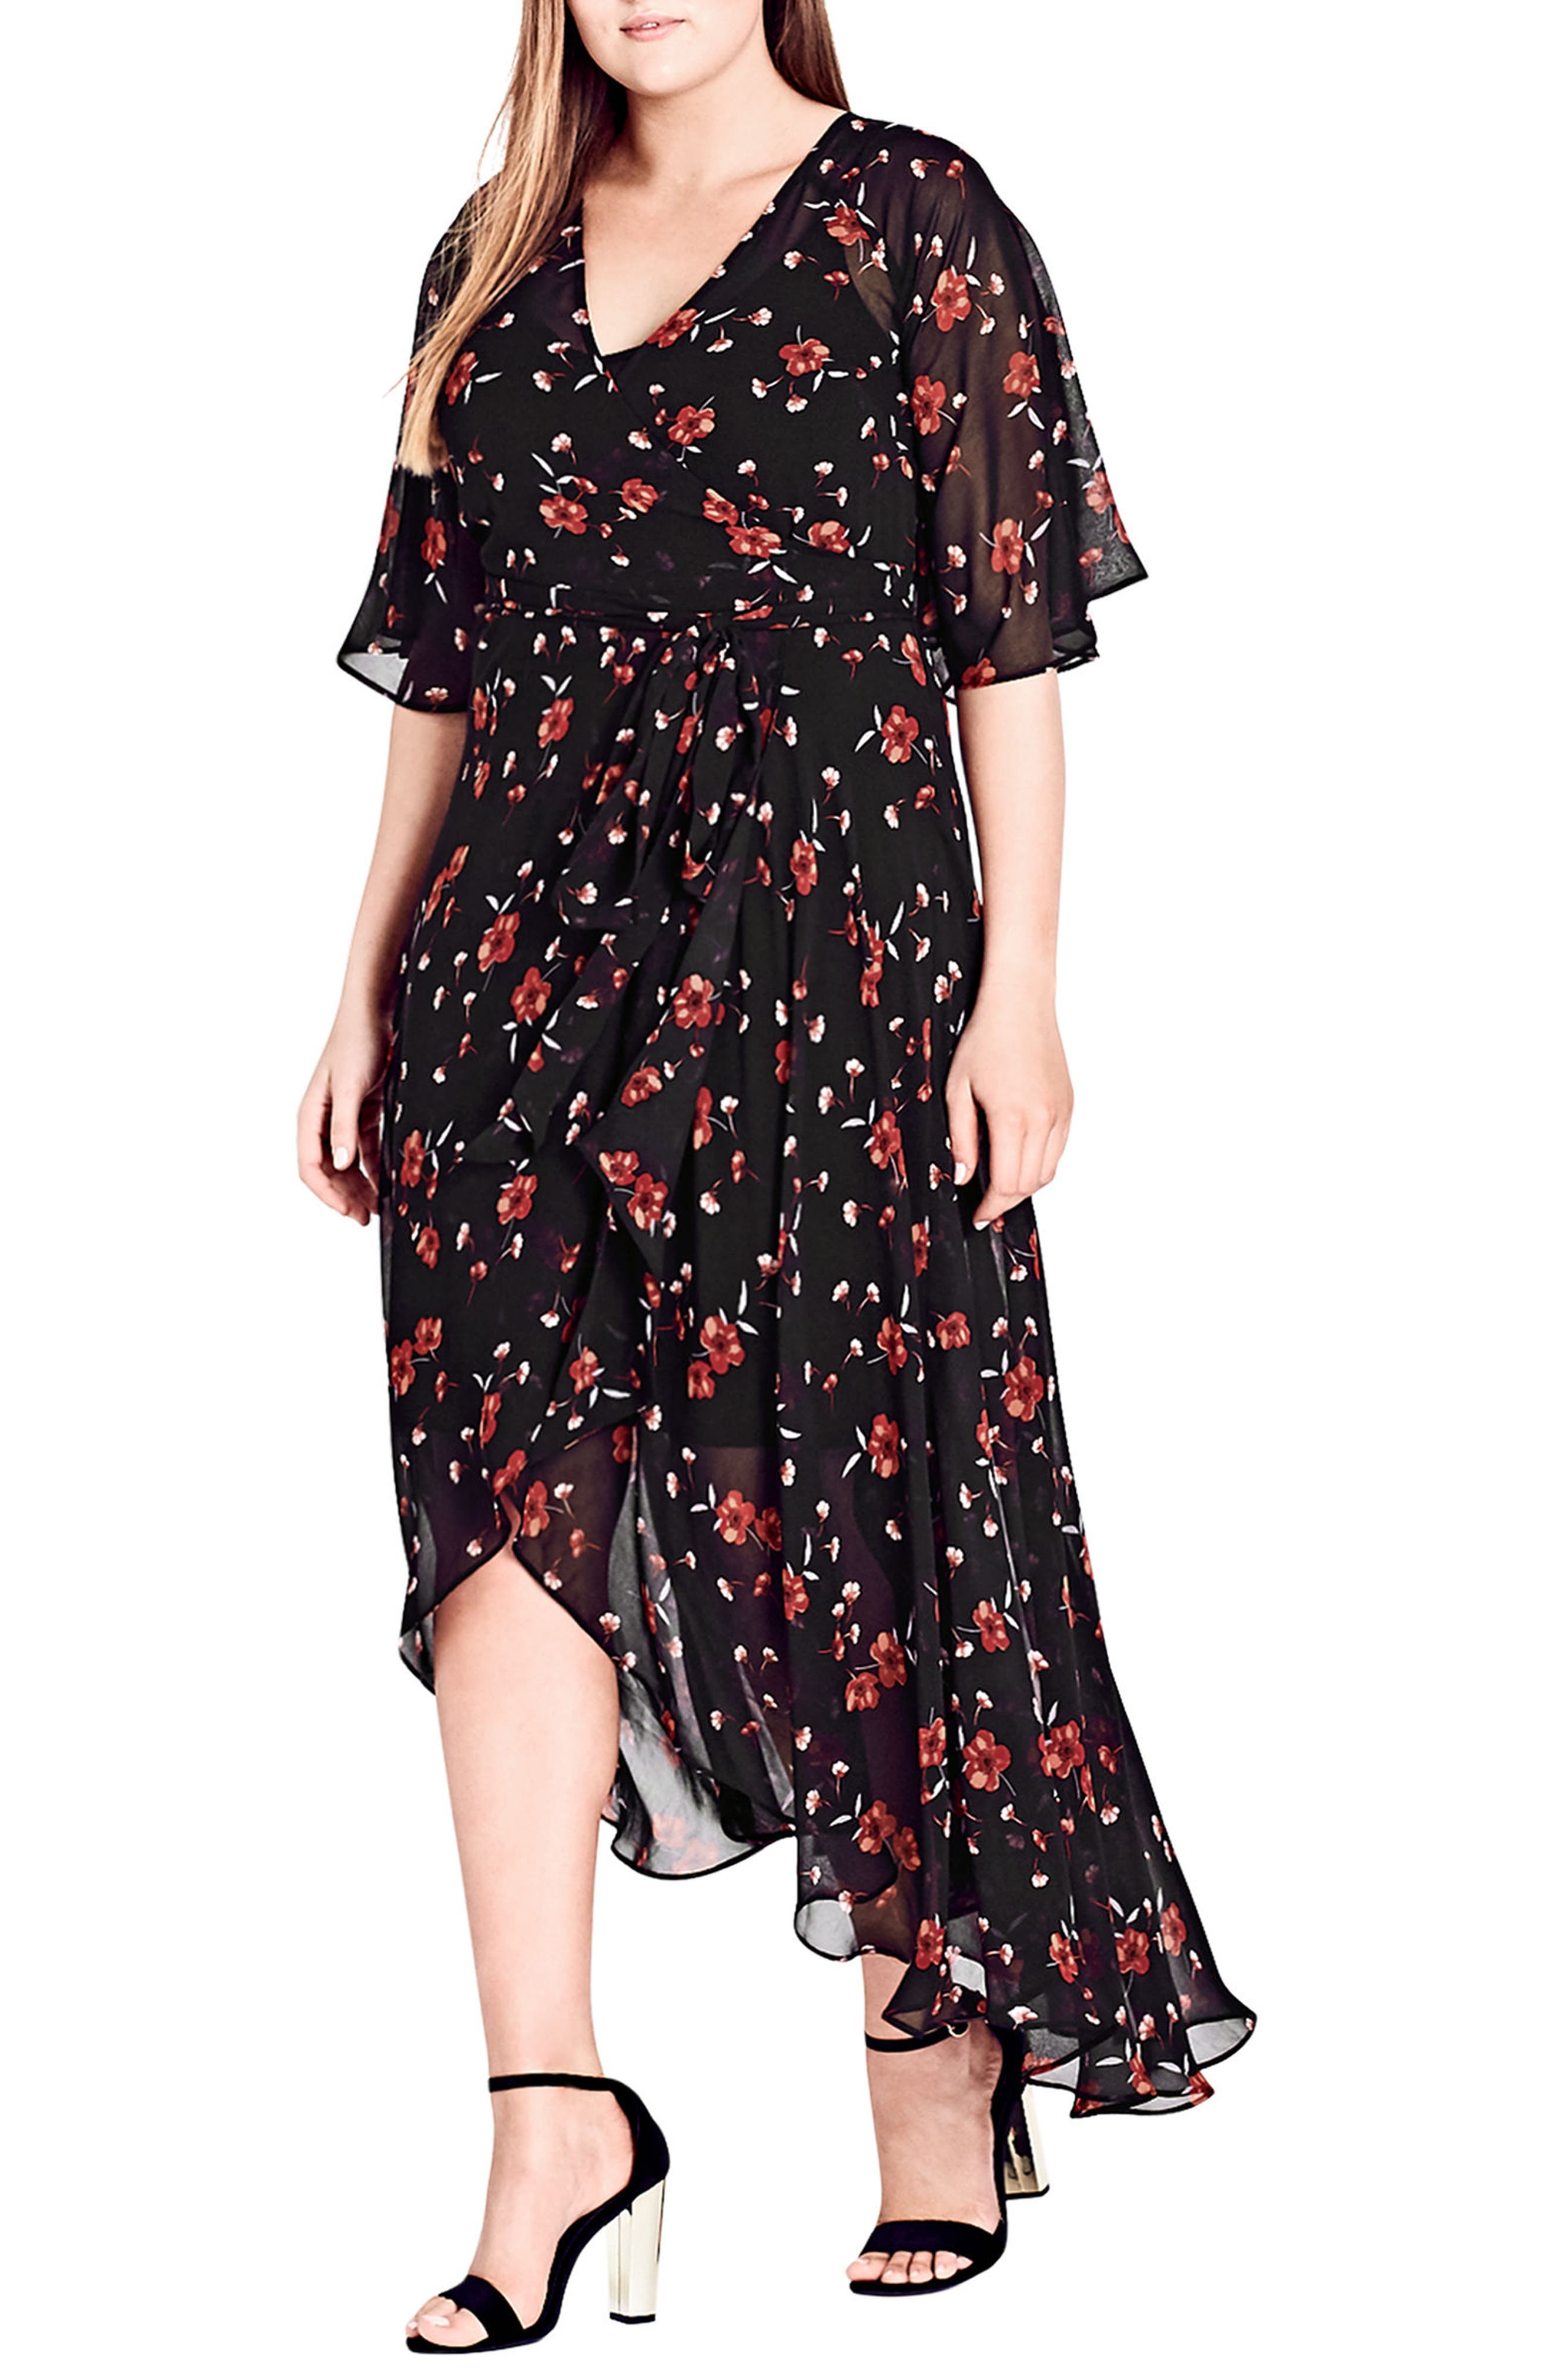 Alternate Image 1 Selected - City Chic Fall in Love Floral Maxi Dress (Plus Size)